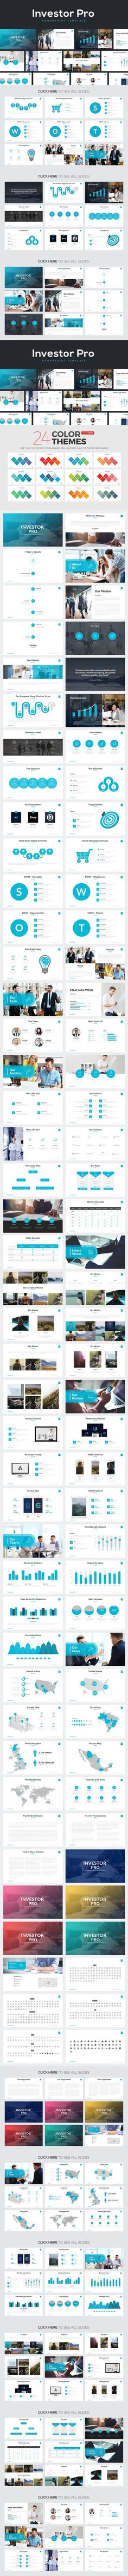 Investor Pro Powerpoint Template. Business Infographic